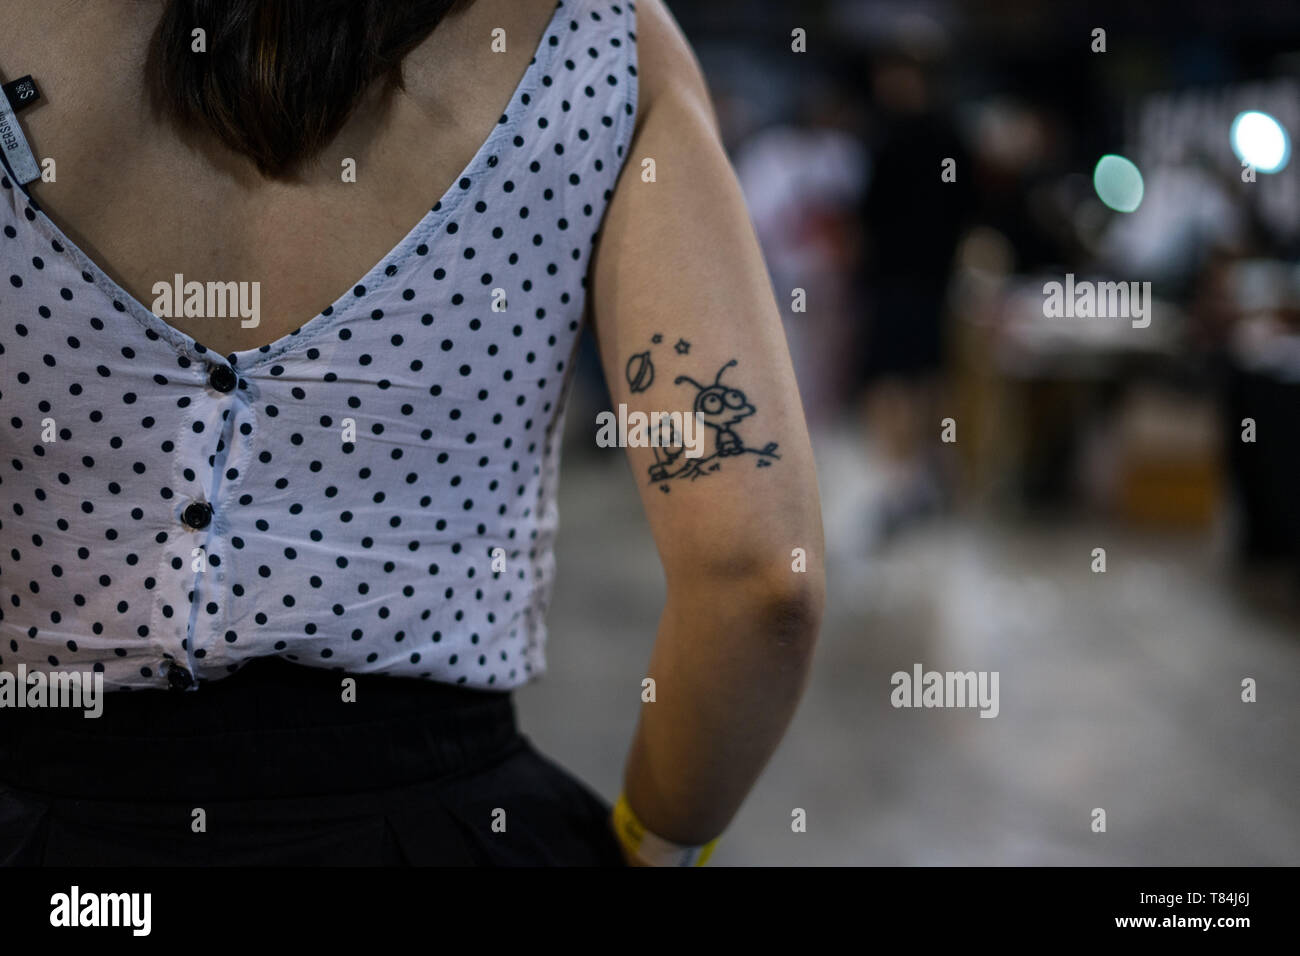 Athens, Attica, Greece. 10th June, 2019. An arm of a woman seen with a tattoo during the event.The Athens Tattoo Convention is a three day annual convention about tattoo and it takes place in Athens, Greece. It has been recognized as one of the best in Europe with visitors from all over the world who come exclusively for the Athens Tattoo Convention experience and also to meet some of the world's most respected tattoo artists. Credit: Nikos Pekiaridis/SOPA Images/ZUMA Wire/Alamy Live News - Stock Image